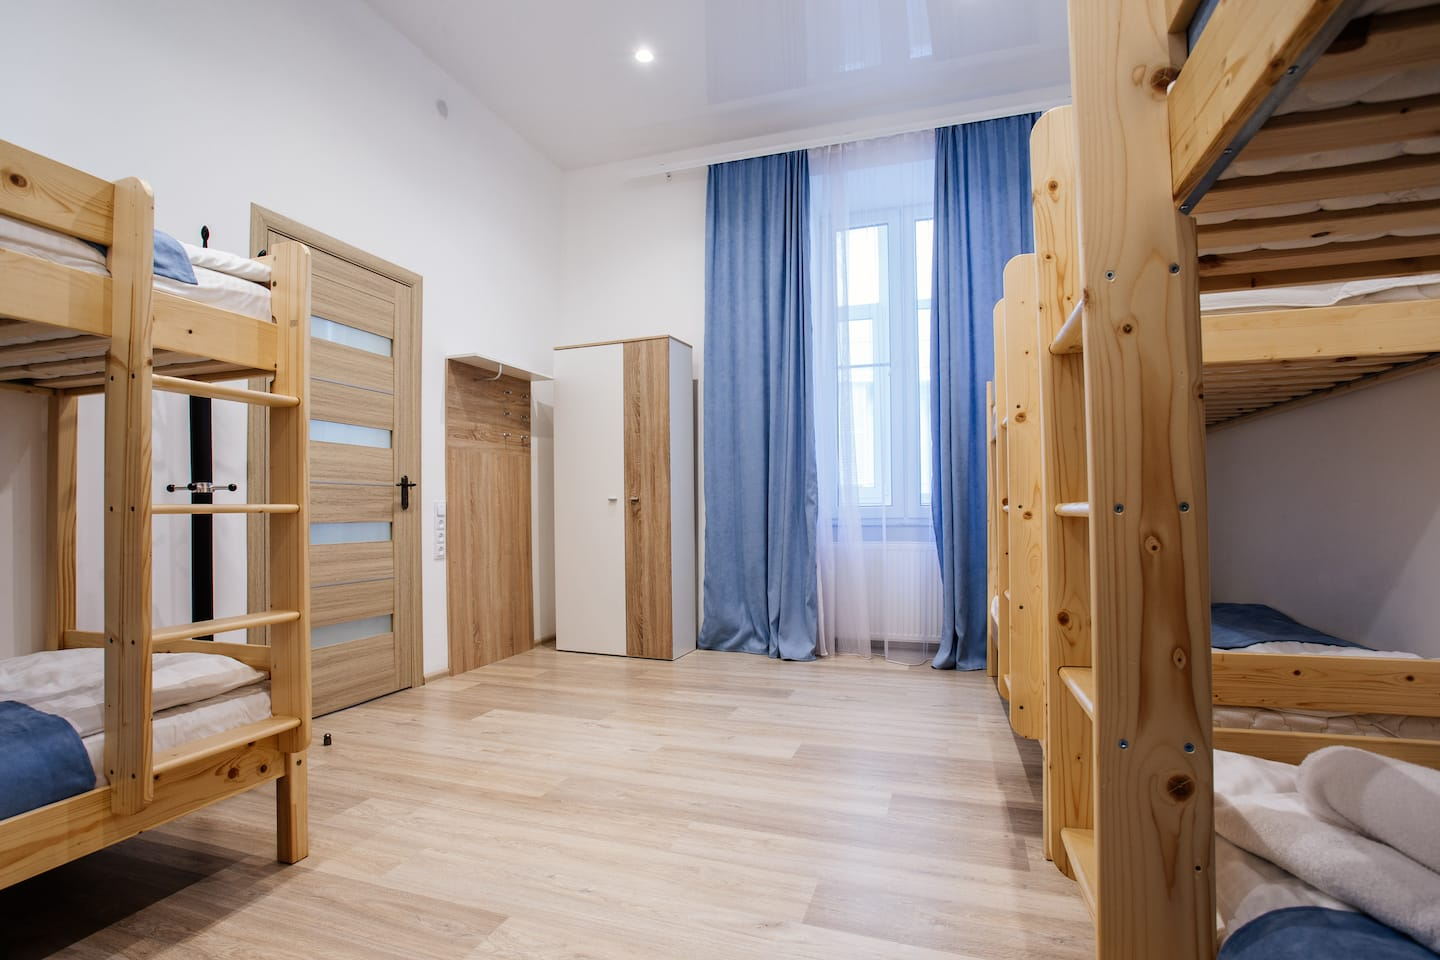 A bed in six-bedded <br> room for men